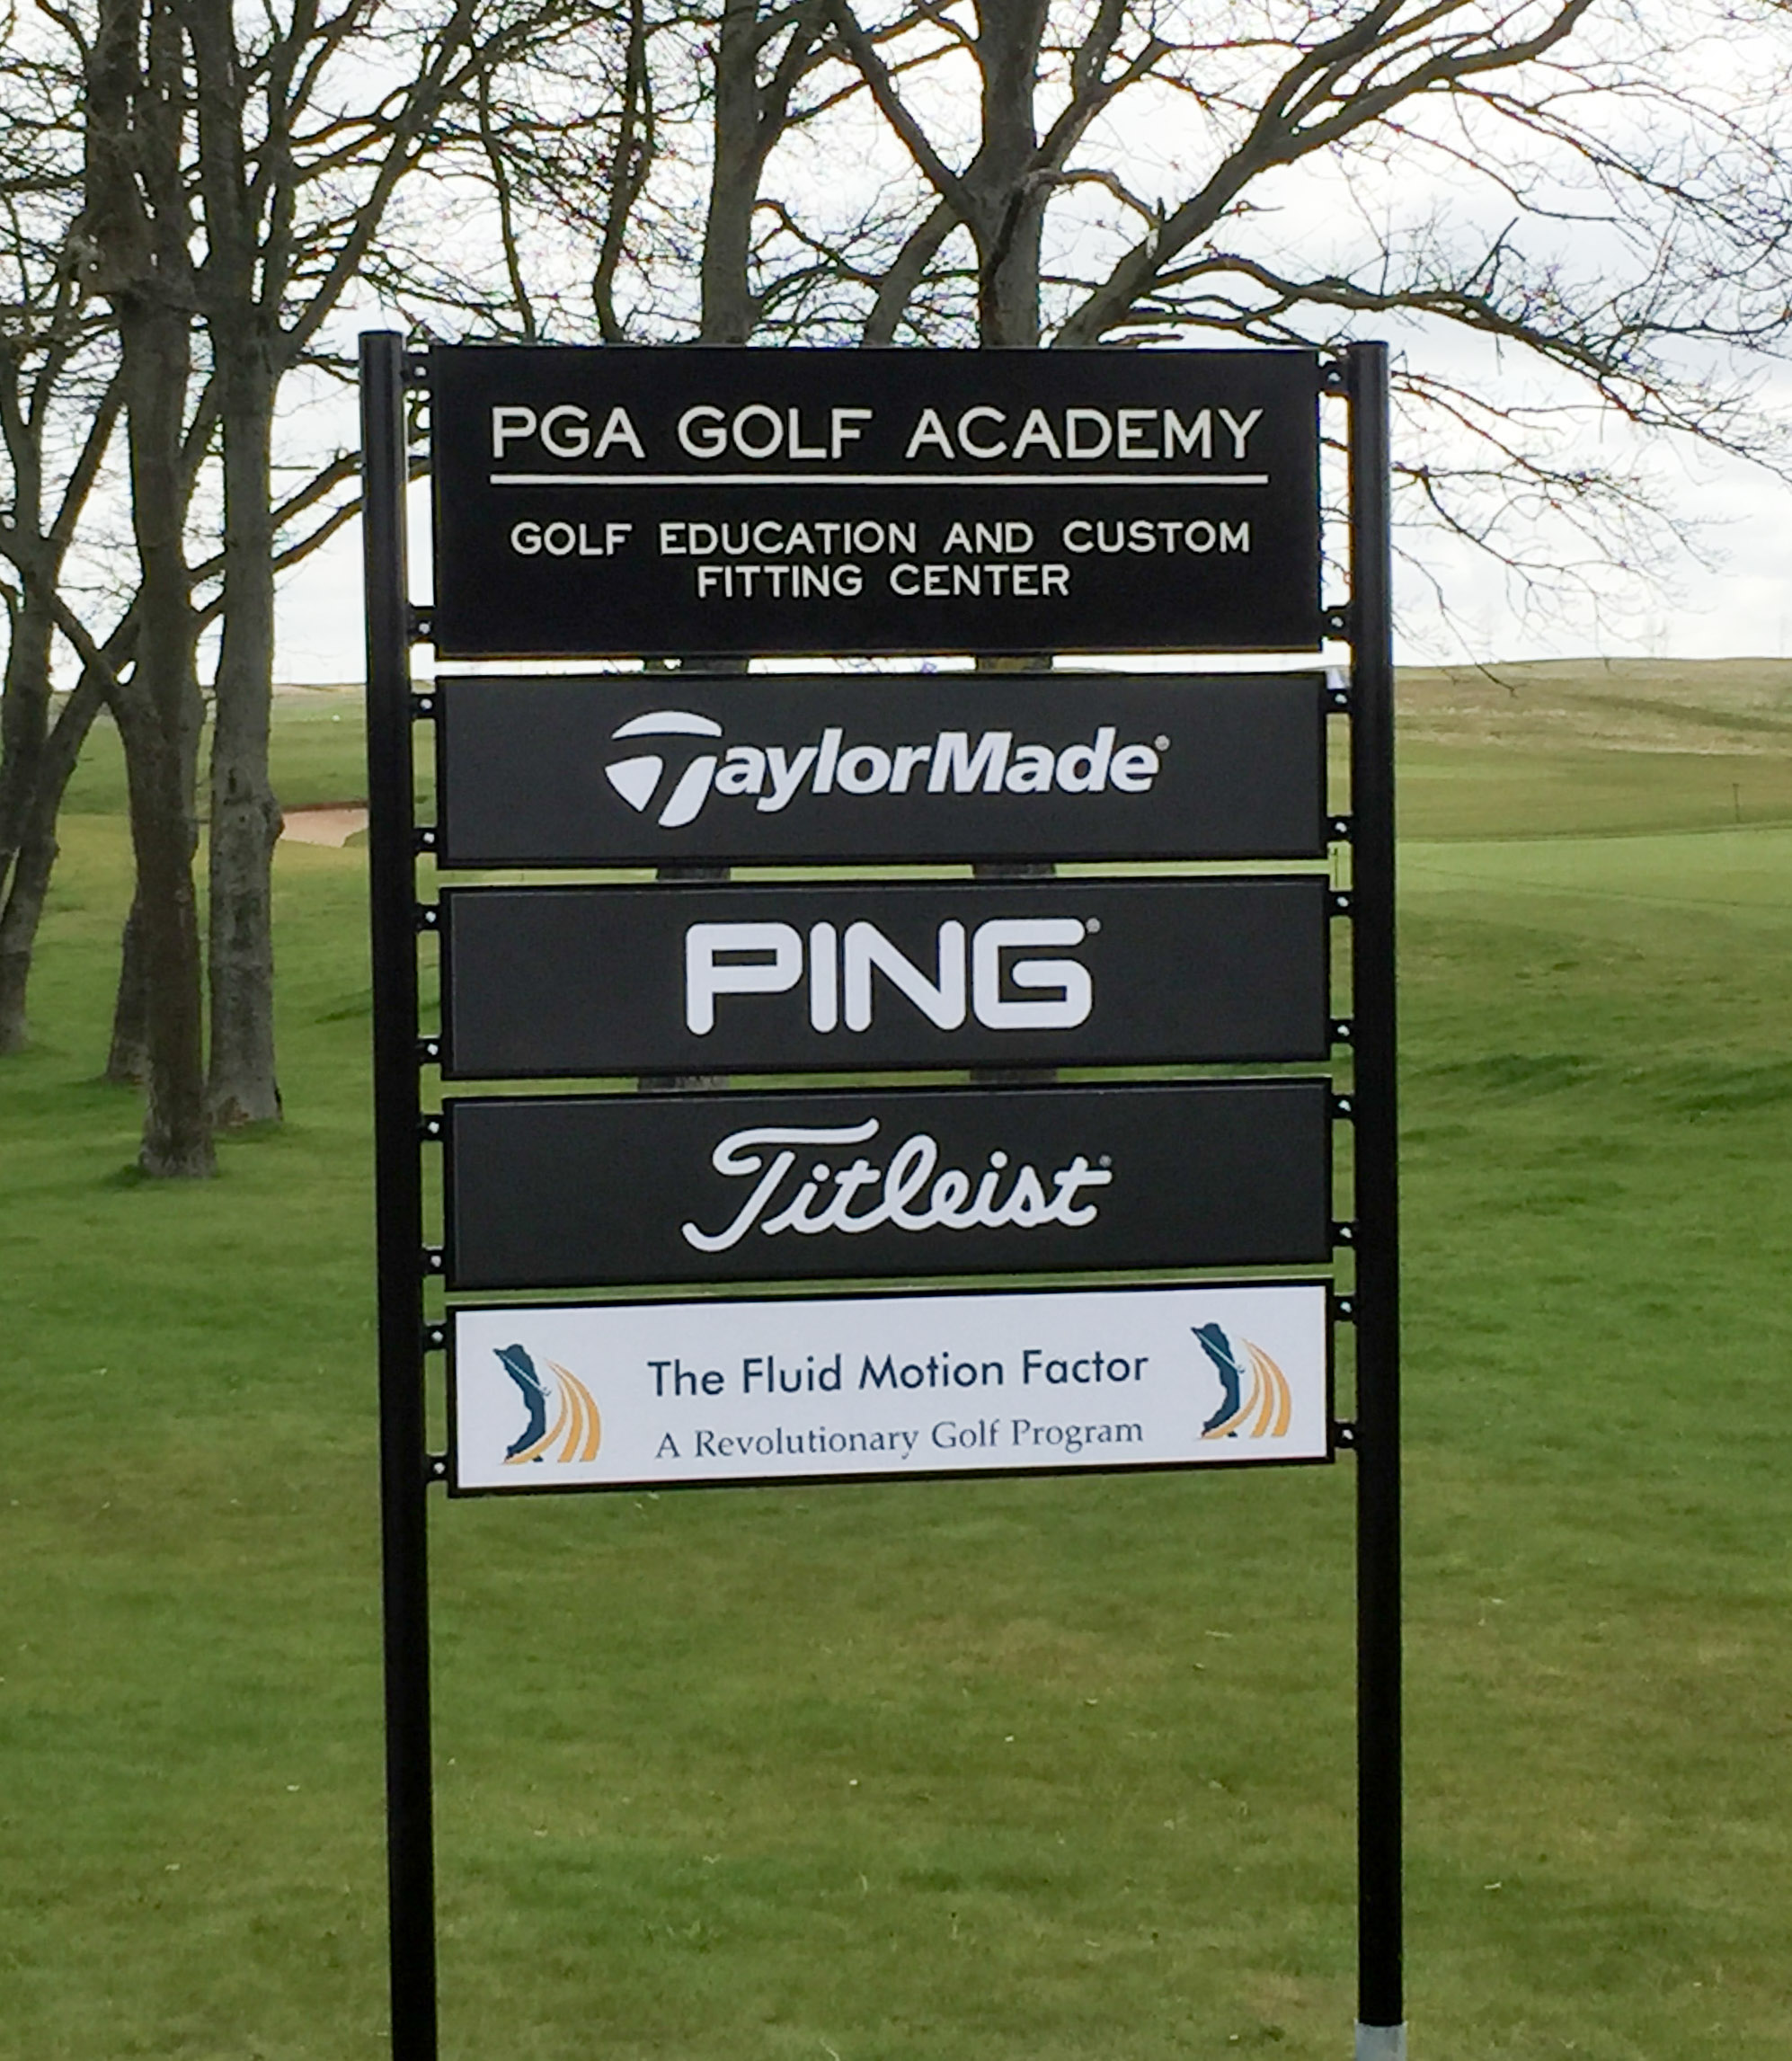 Titleist, Pga Golf Academy, Taylor Made, Ping